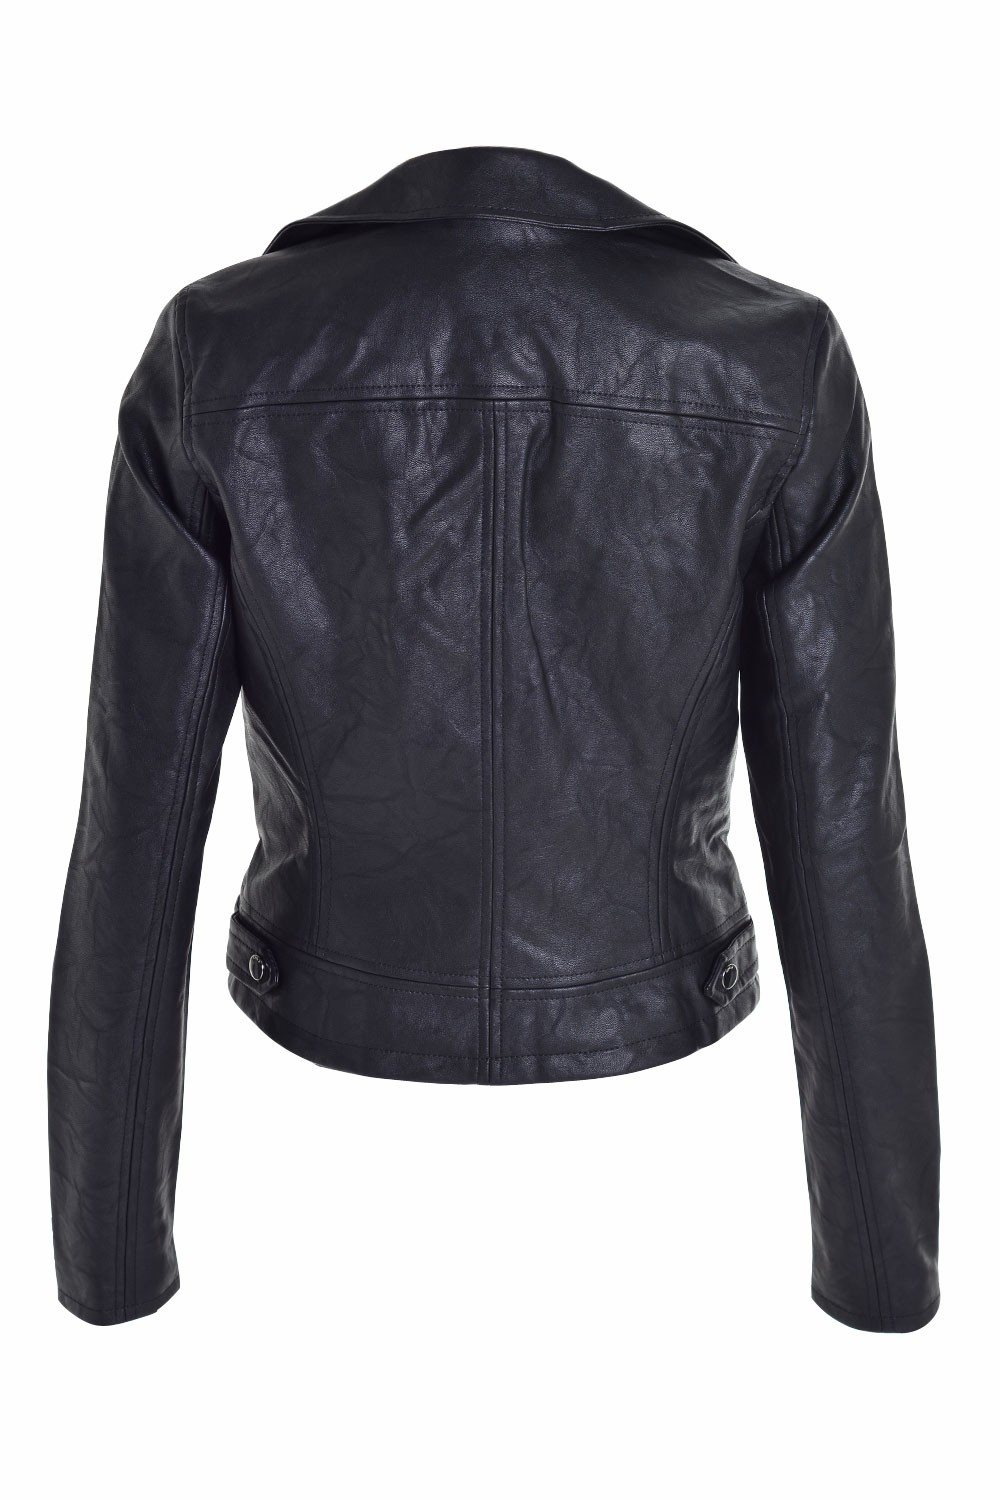 Find great deals on eBay for faux leather jacket. Shop with confidence. Skip to main content jacket men faux leather moto jacket faux leather jacket xl leather jacket women mens faux leather jacket faux leather jacket black plus size faux leather jacket faux leather biker jacket faux leather jacket small motorcycle jacket. Include.